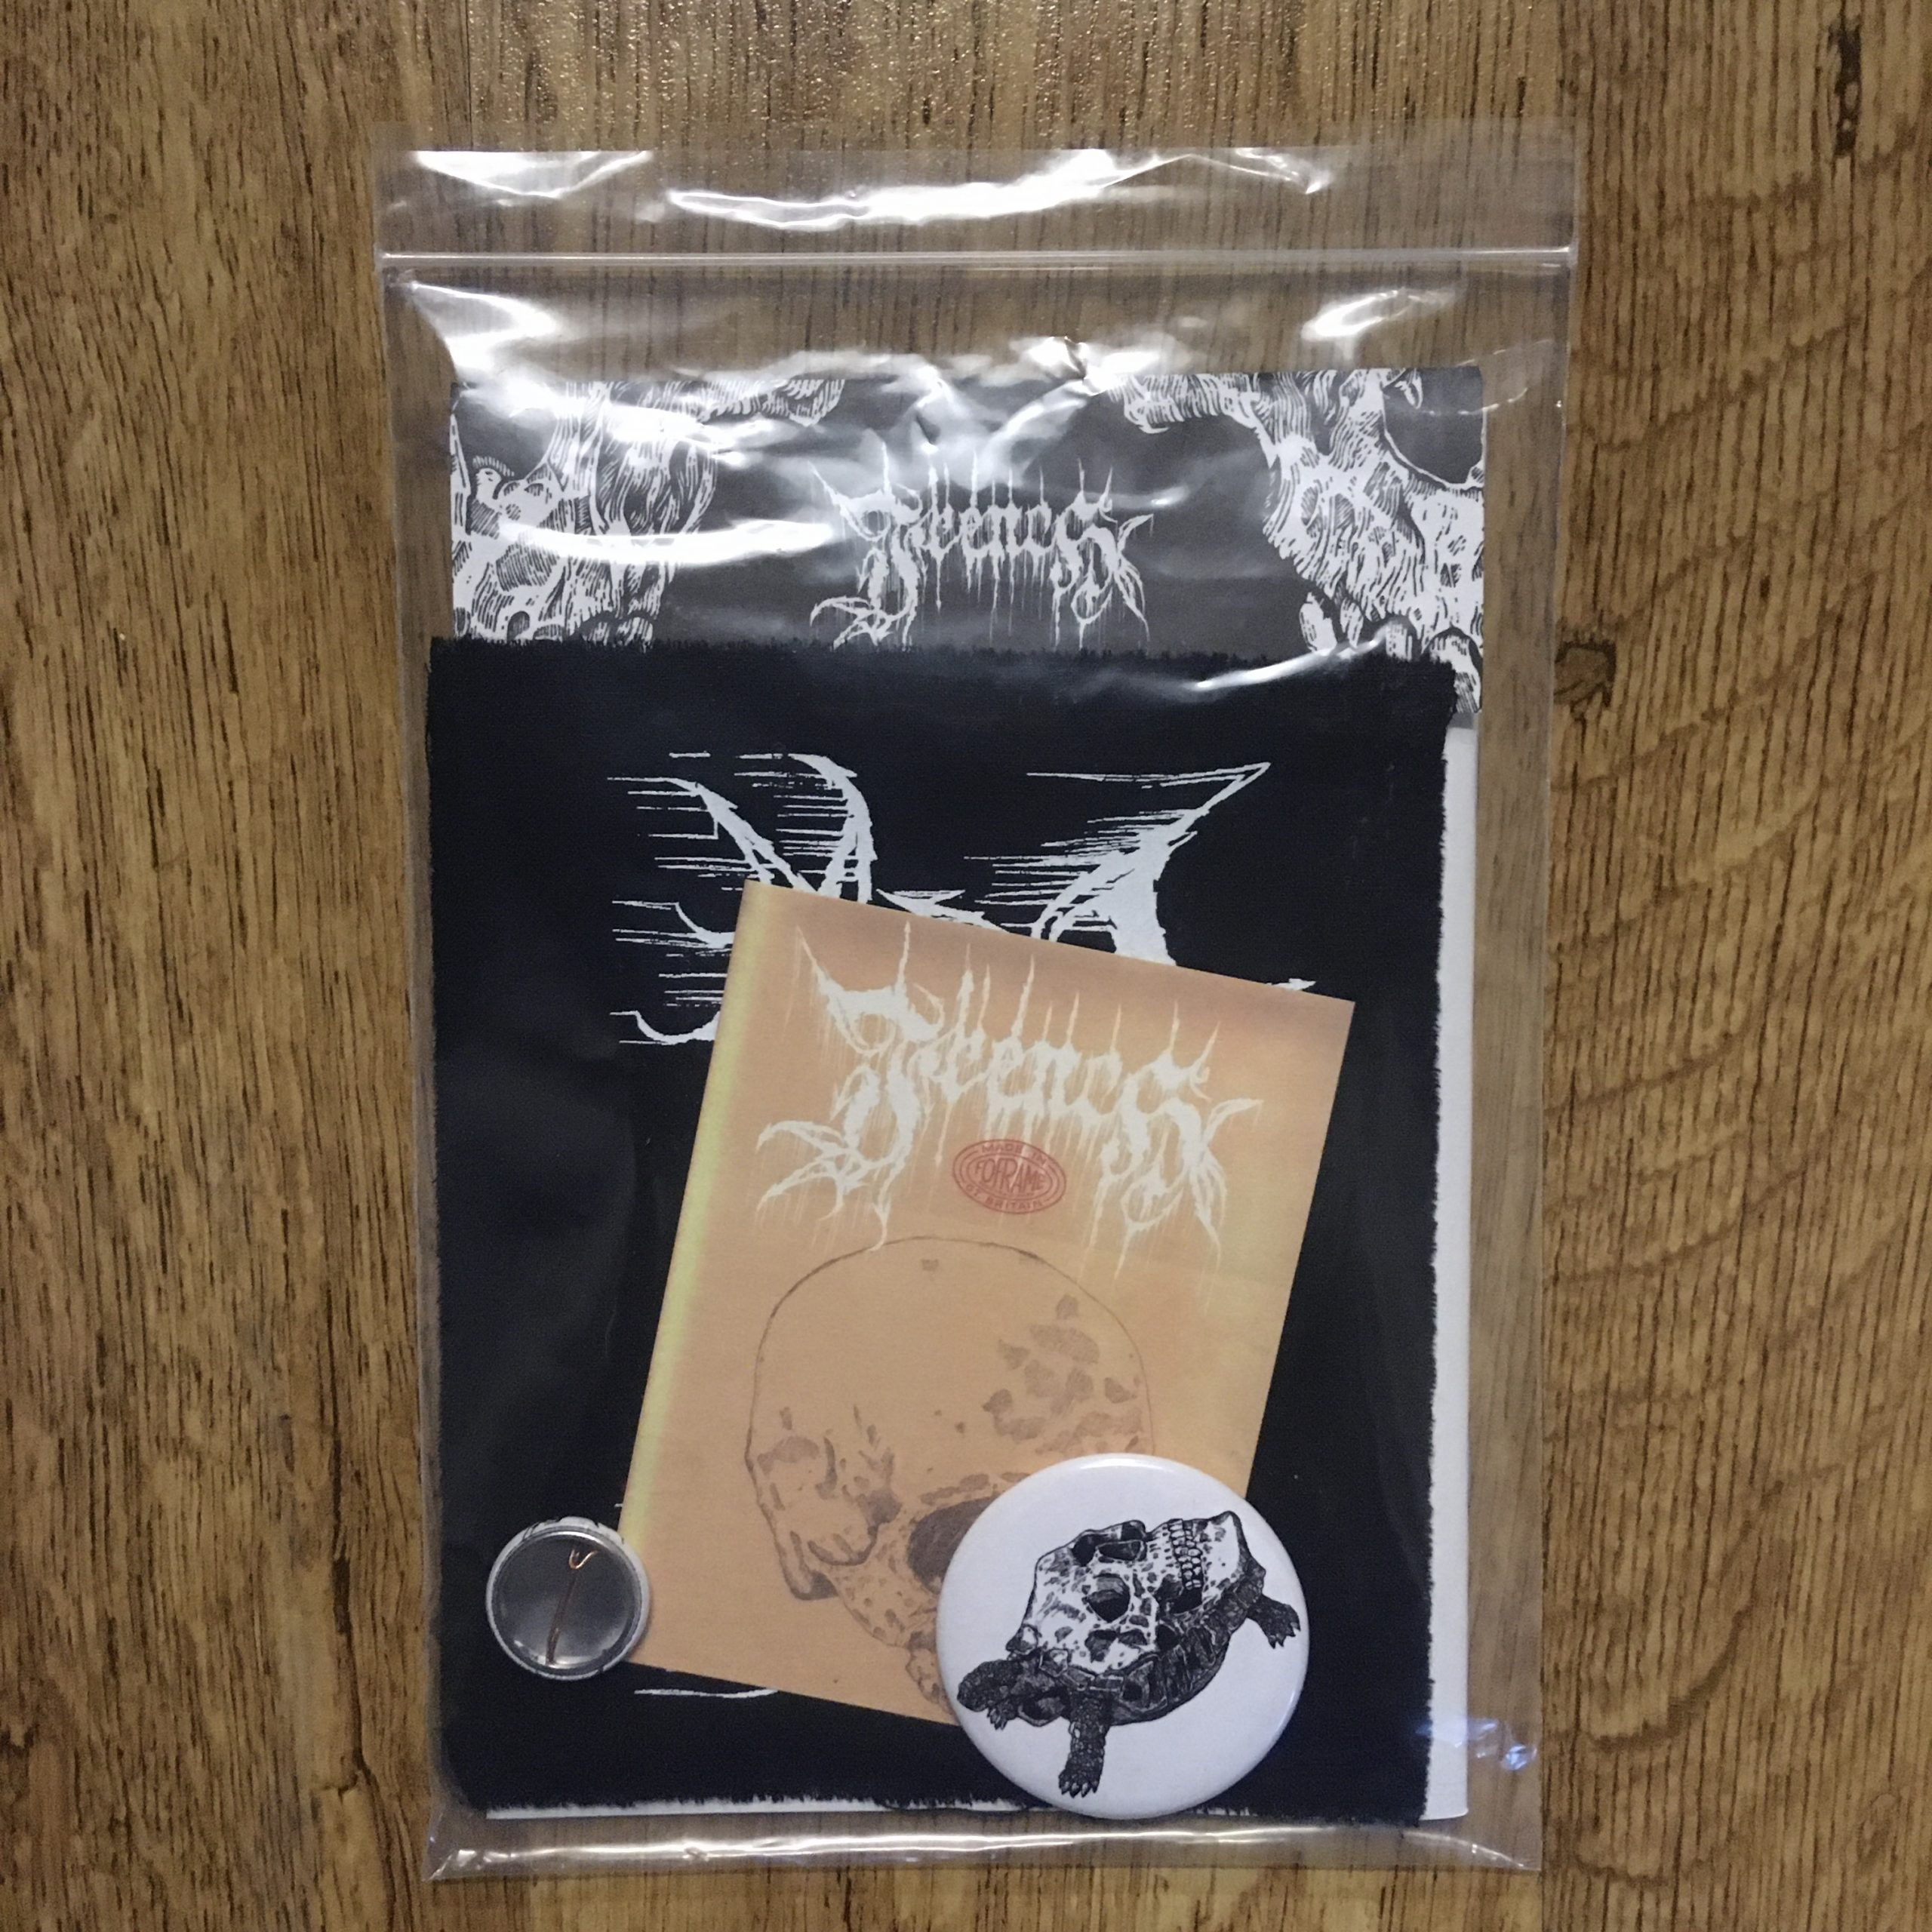 Photo of the French - zine pack